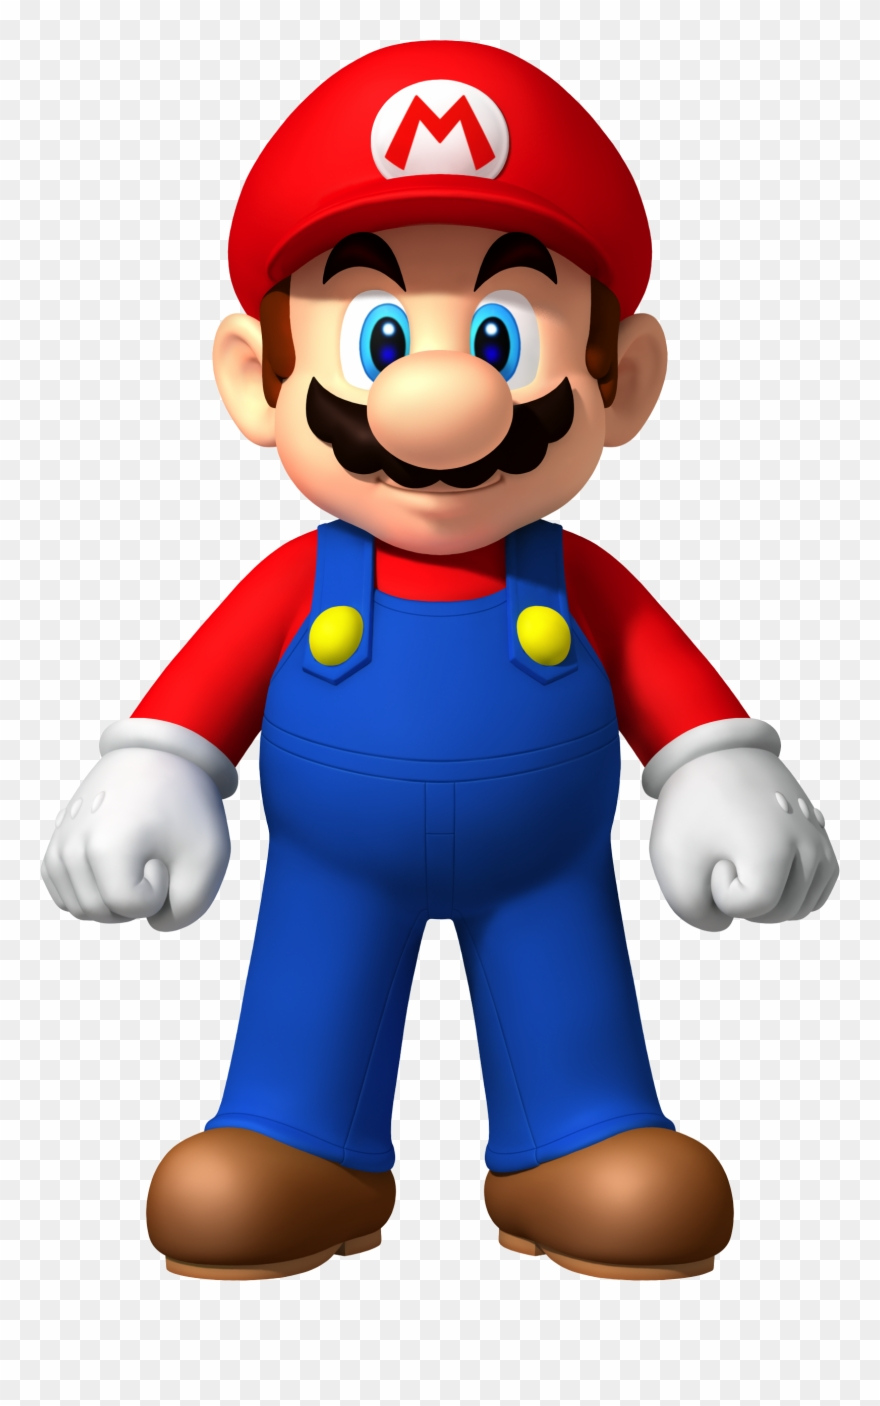 Mario brothers clipart picture black and white download Mario Brothers Clip Art - Mario Bros - Png Download (#41199 ... picture black and white download